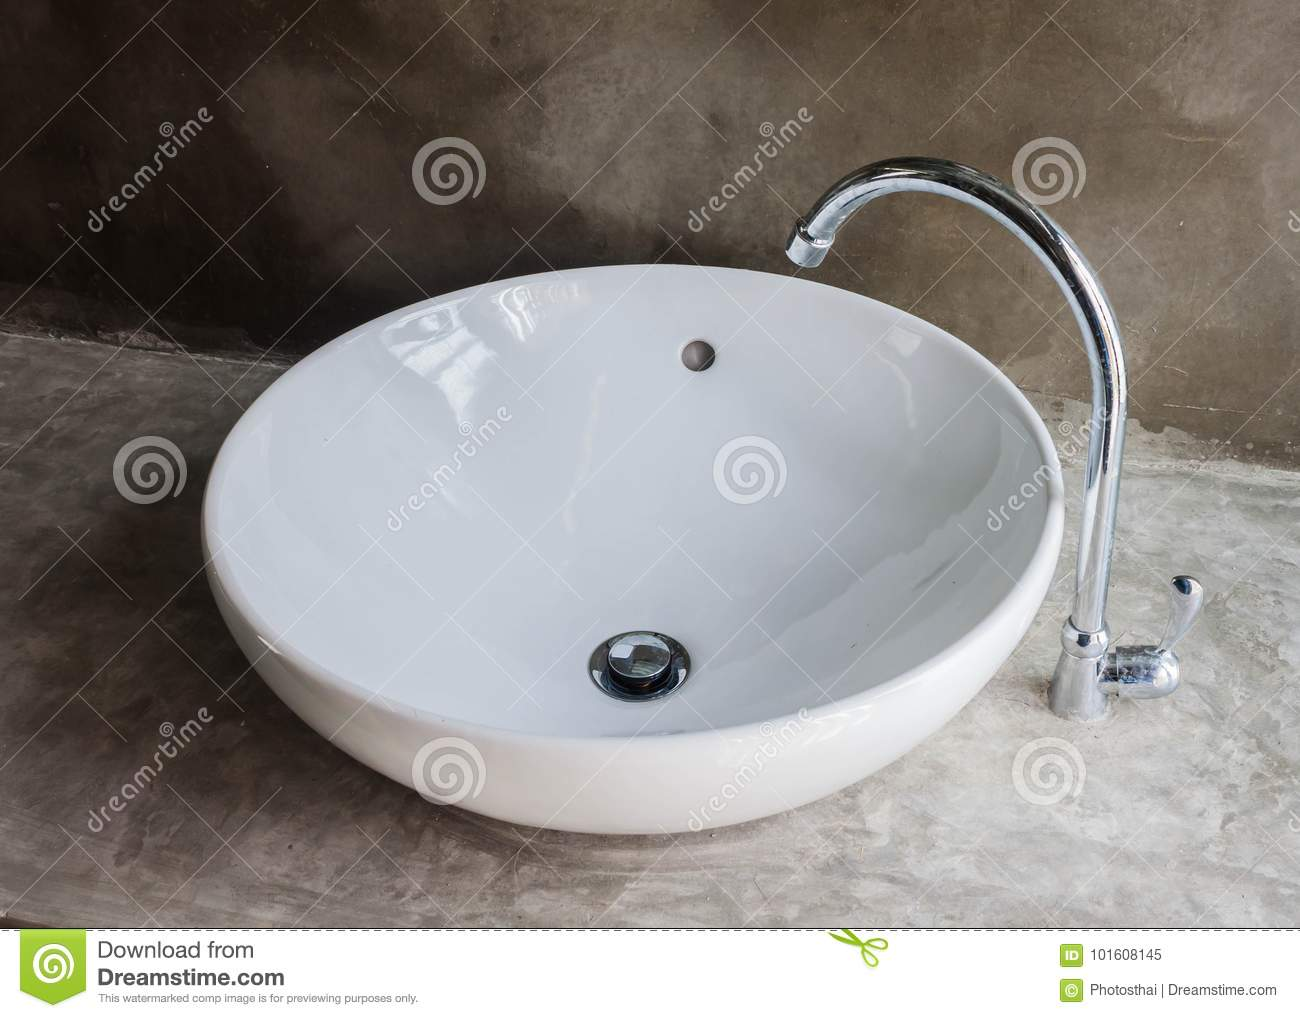 Round Shape Of Basin And Faucet In Bathroom. Stock Image - Image of ...